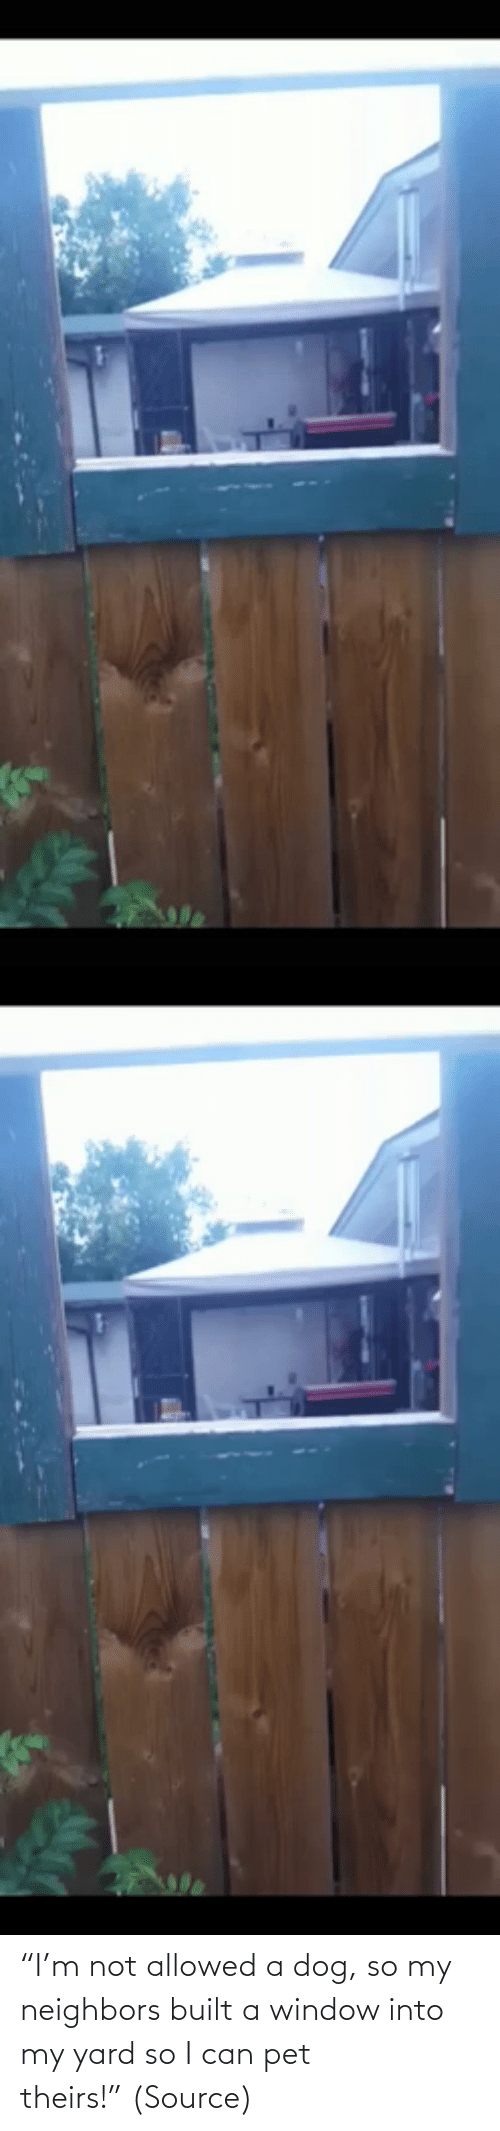 "So I: ""I'm not allowed a dog, so my neighbors built a window into my yard so I can pet theirs!"" (Source)"